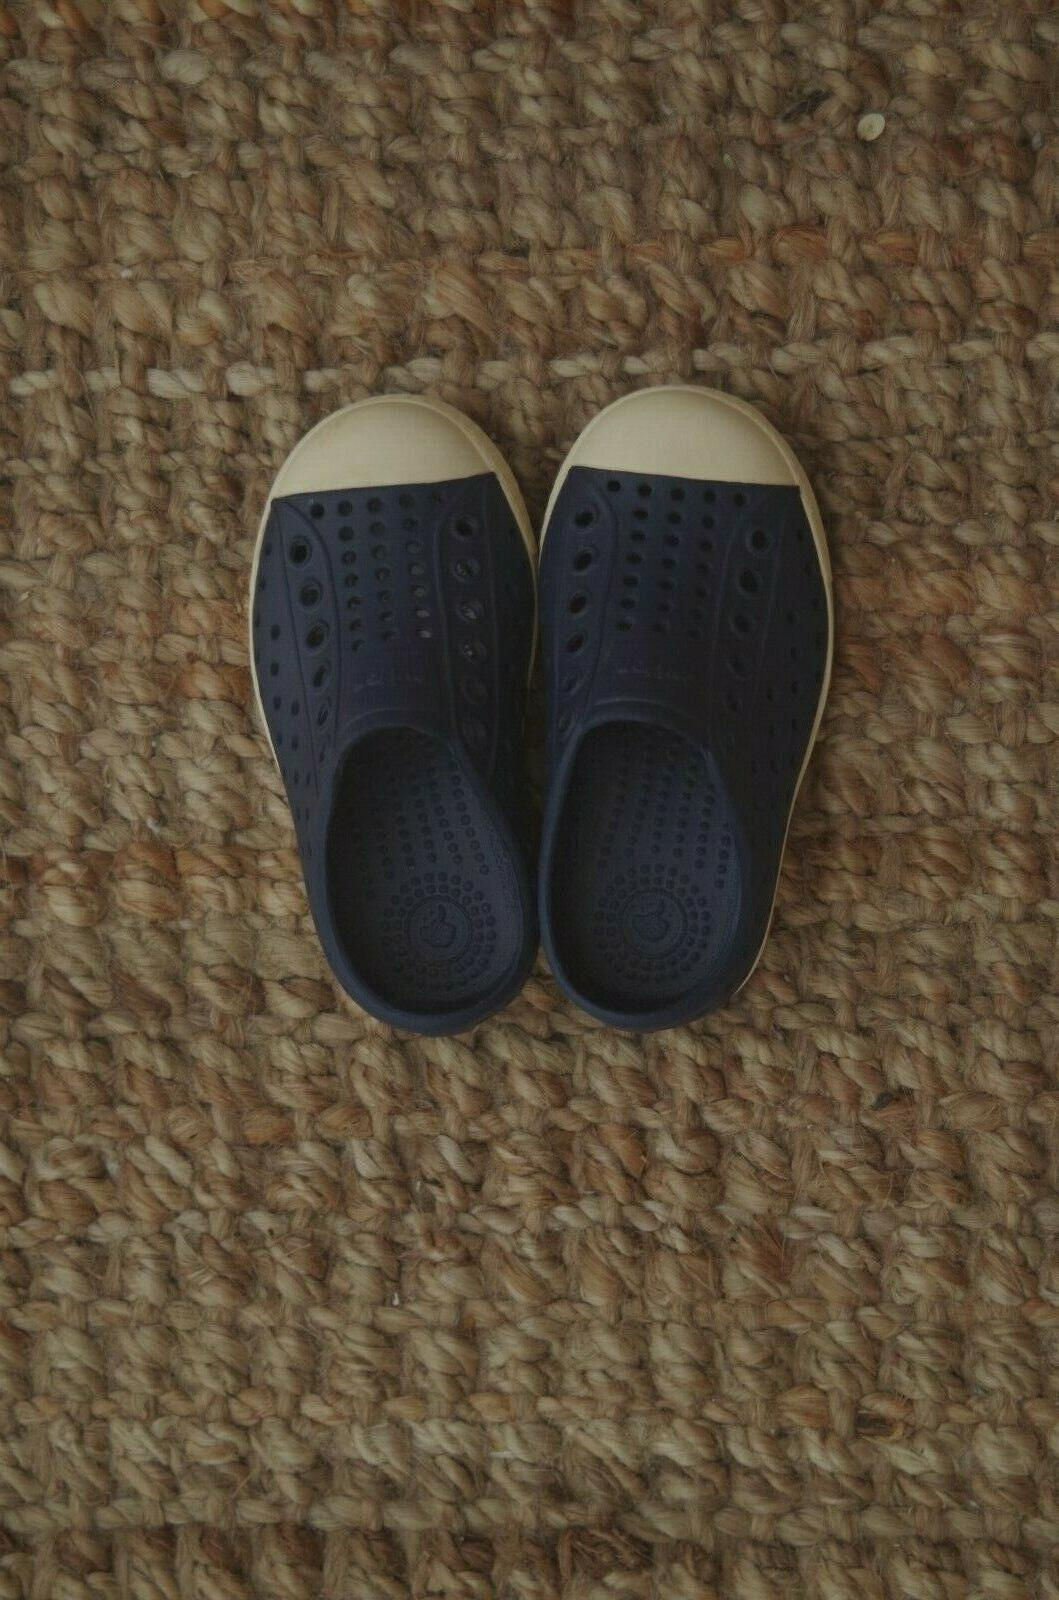 brand new shoes kids size 7